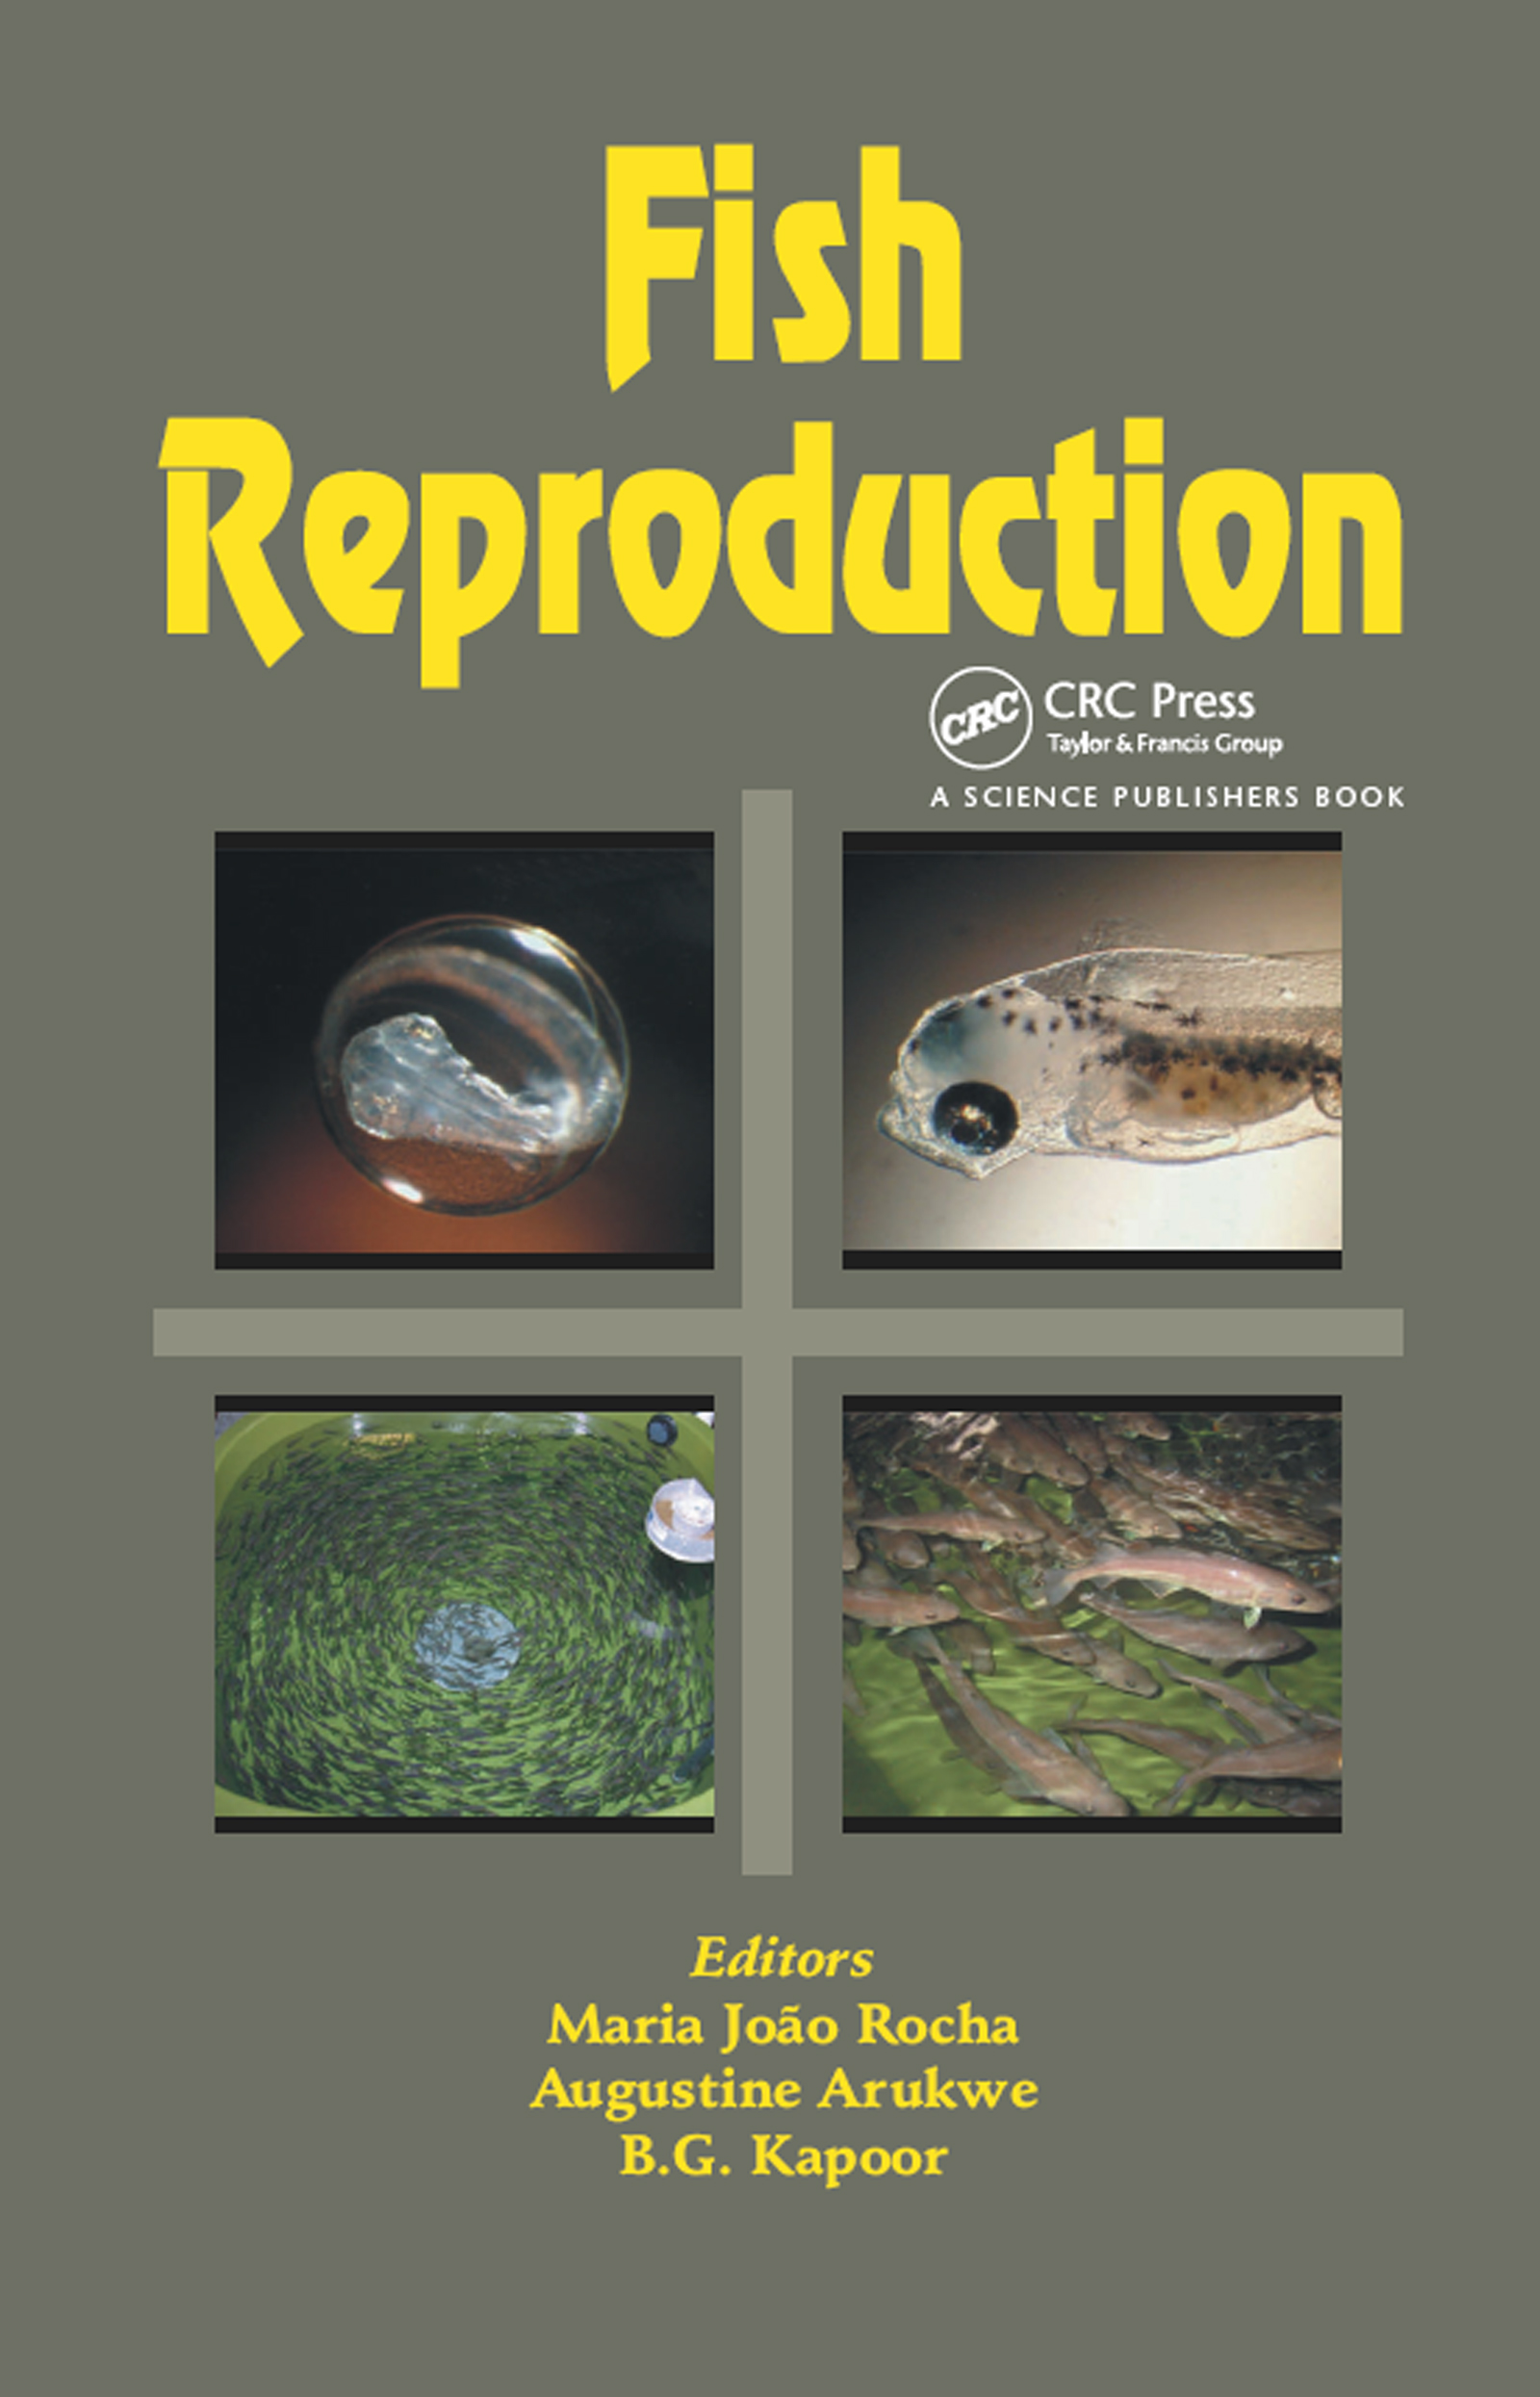 Fish reproduction - photo#17